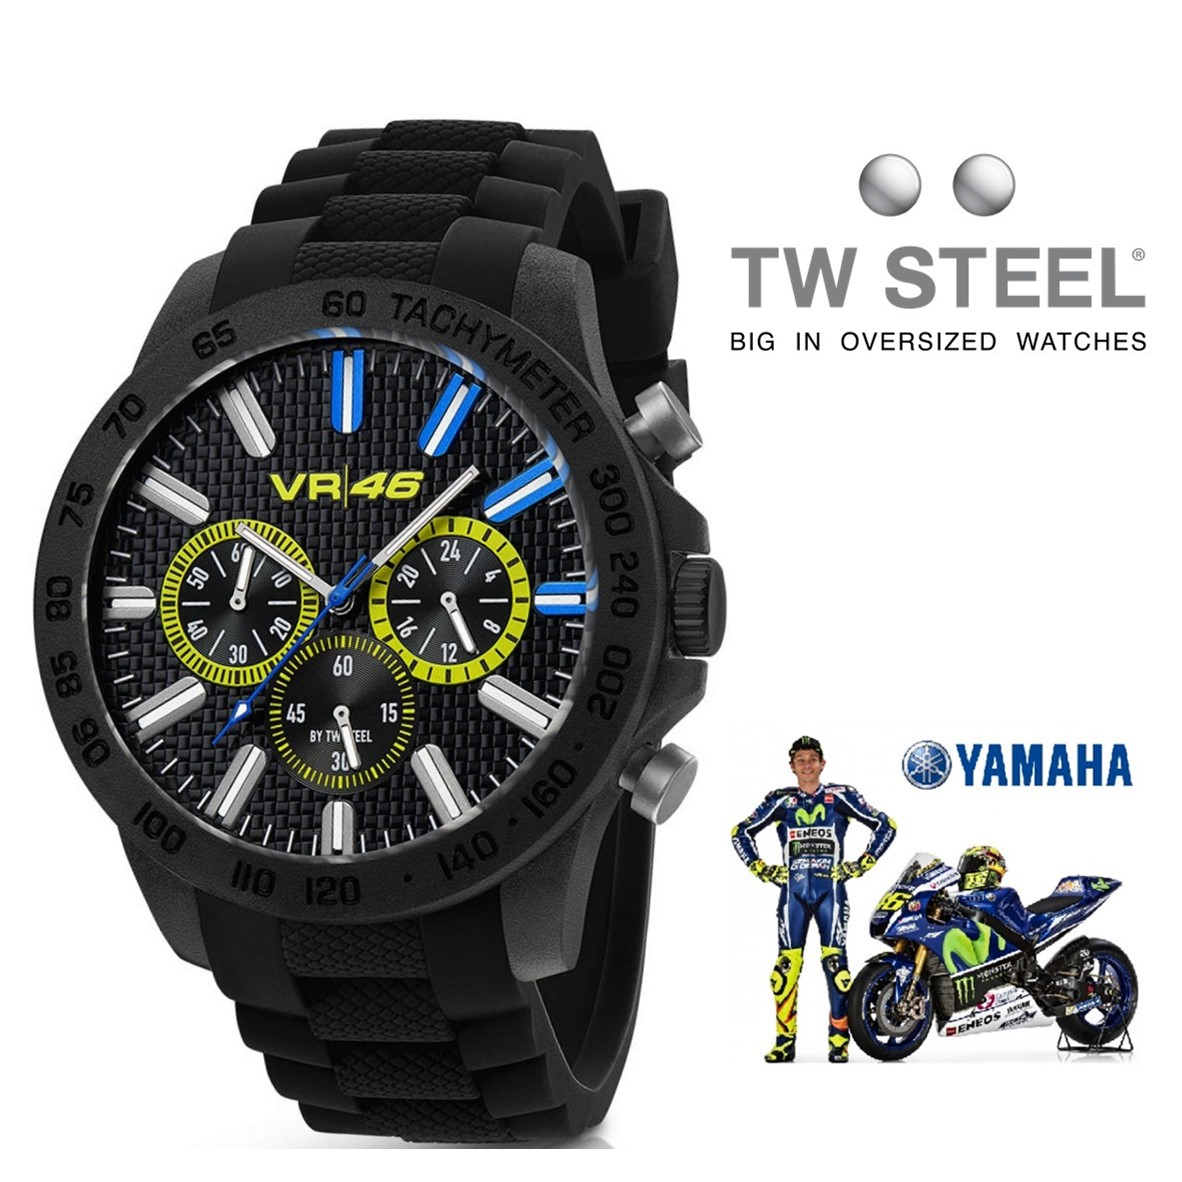 montre tw steel valentino rossi vr114 noir chronographe 10atm you like it. Black Bedroom Furniture Sets. Home Design Ideas